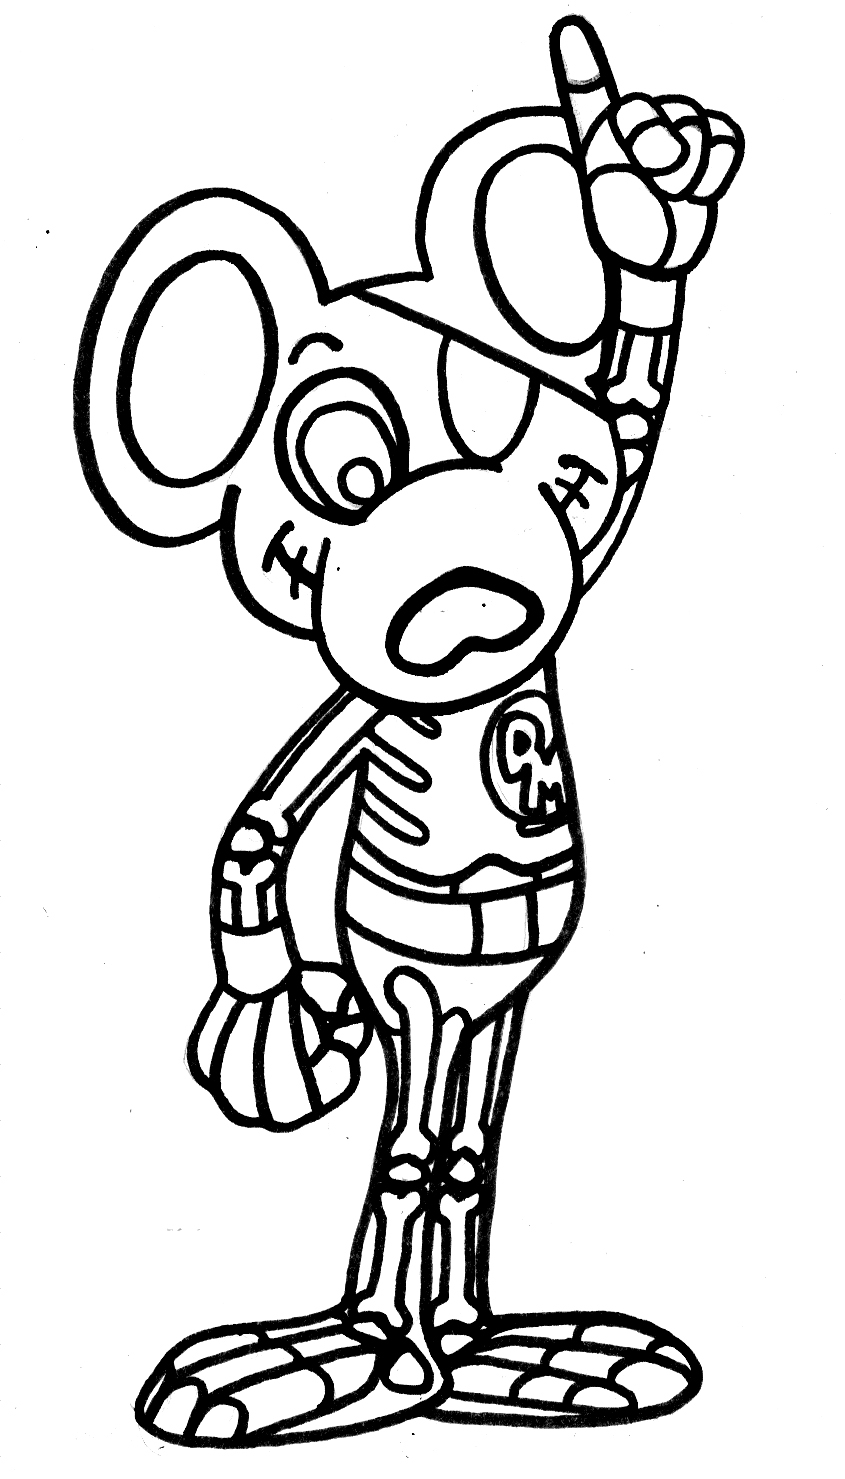 danger mouse coloring pages - photo#1